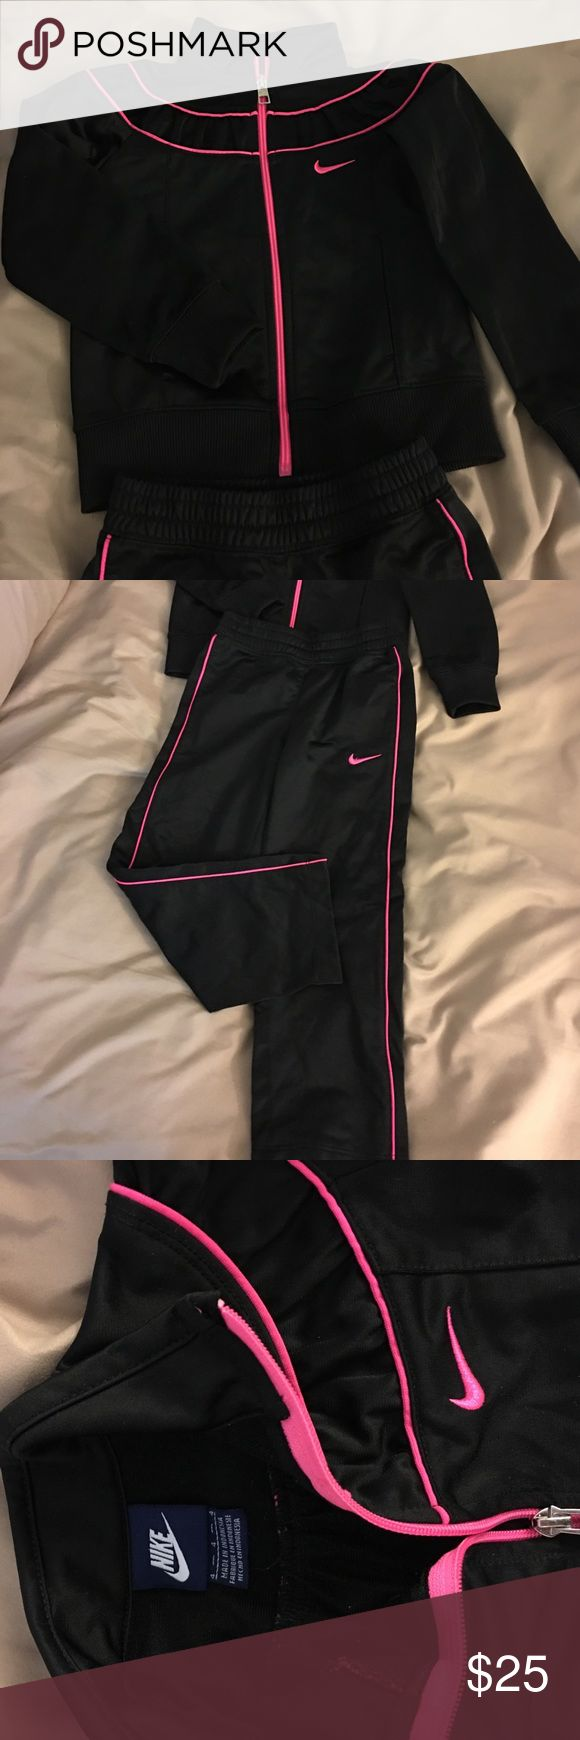 Nike Sweat Suit Pants and Matching Jacket NWOT Black with hot pink stripes - Nike Brand Nike Matching Sets